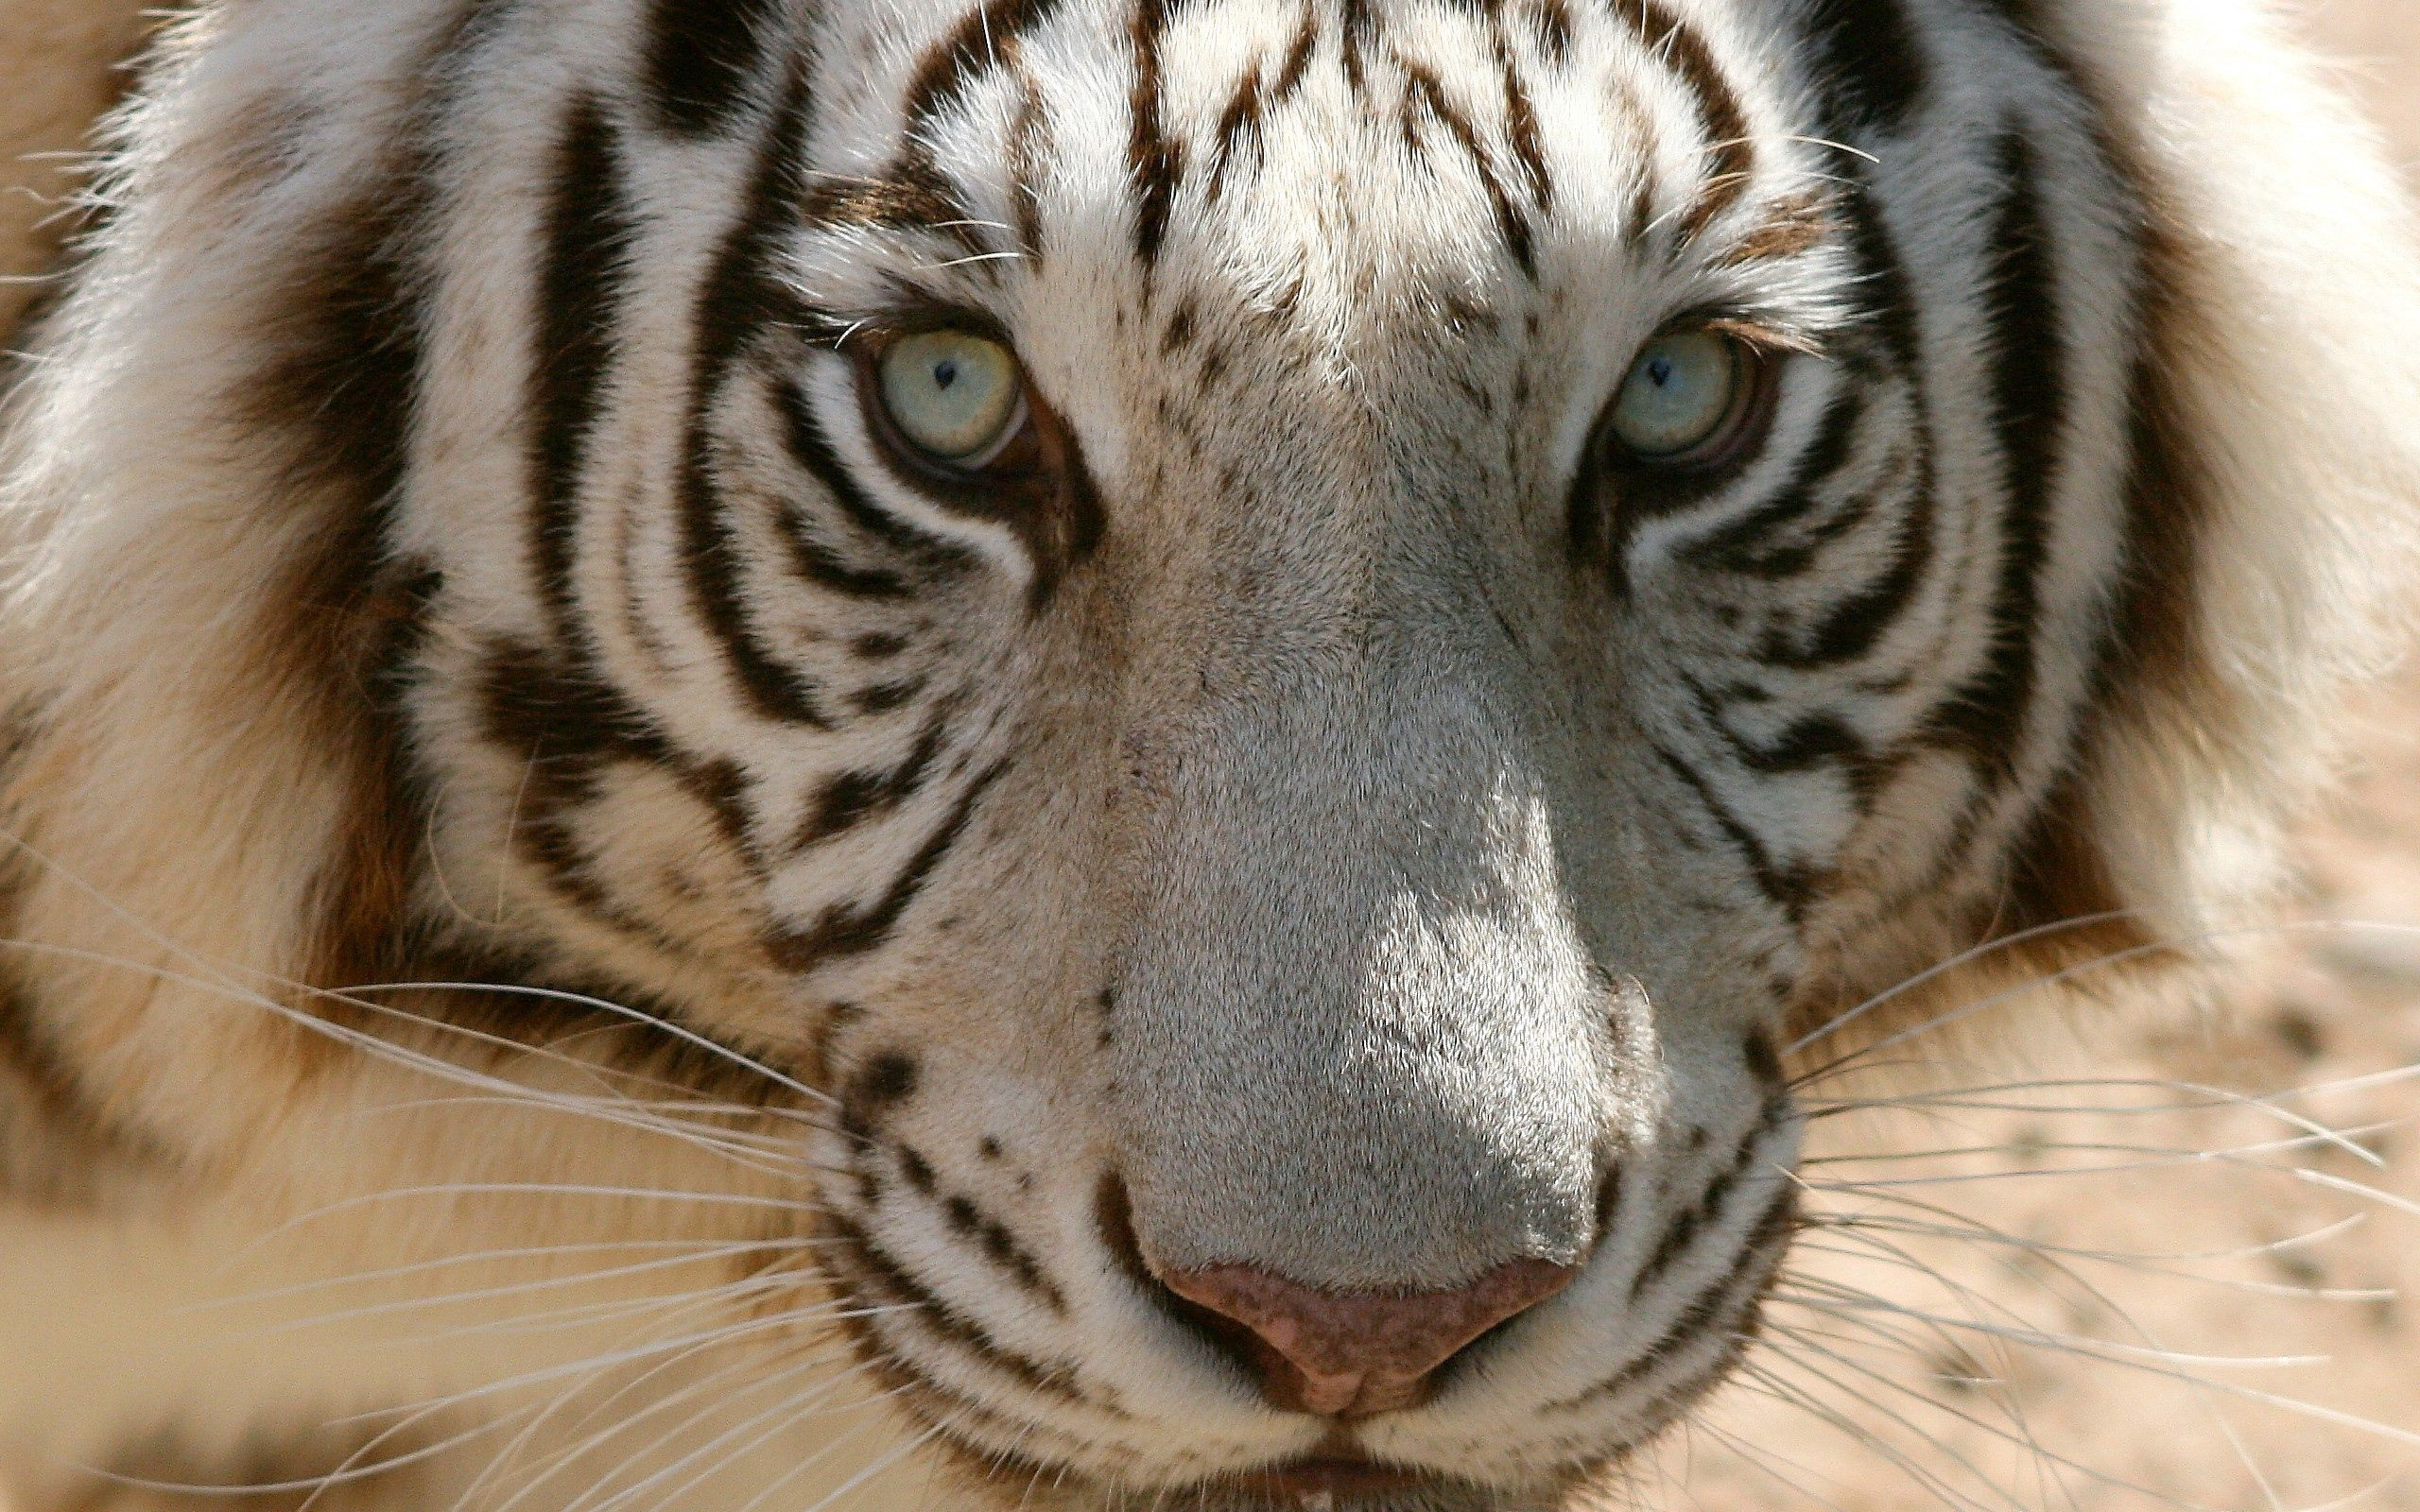 81473 download wallpaper Animals, Tiger, Muzzle, Sight, Opinion, Predator screensavers and pictures for free